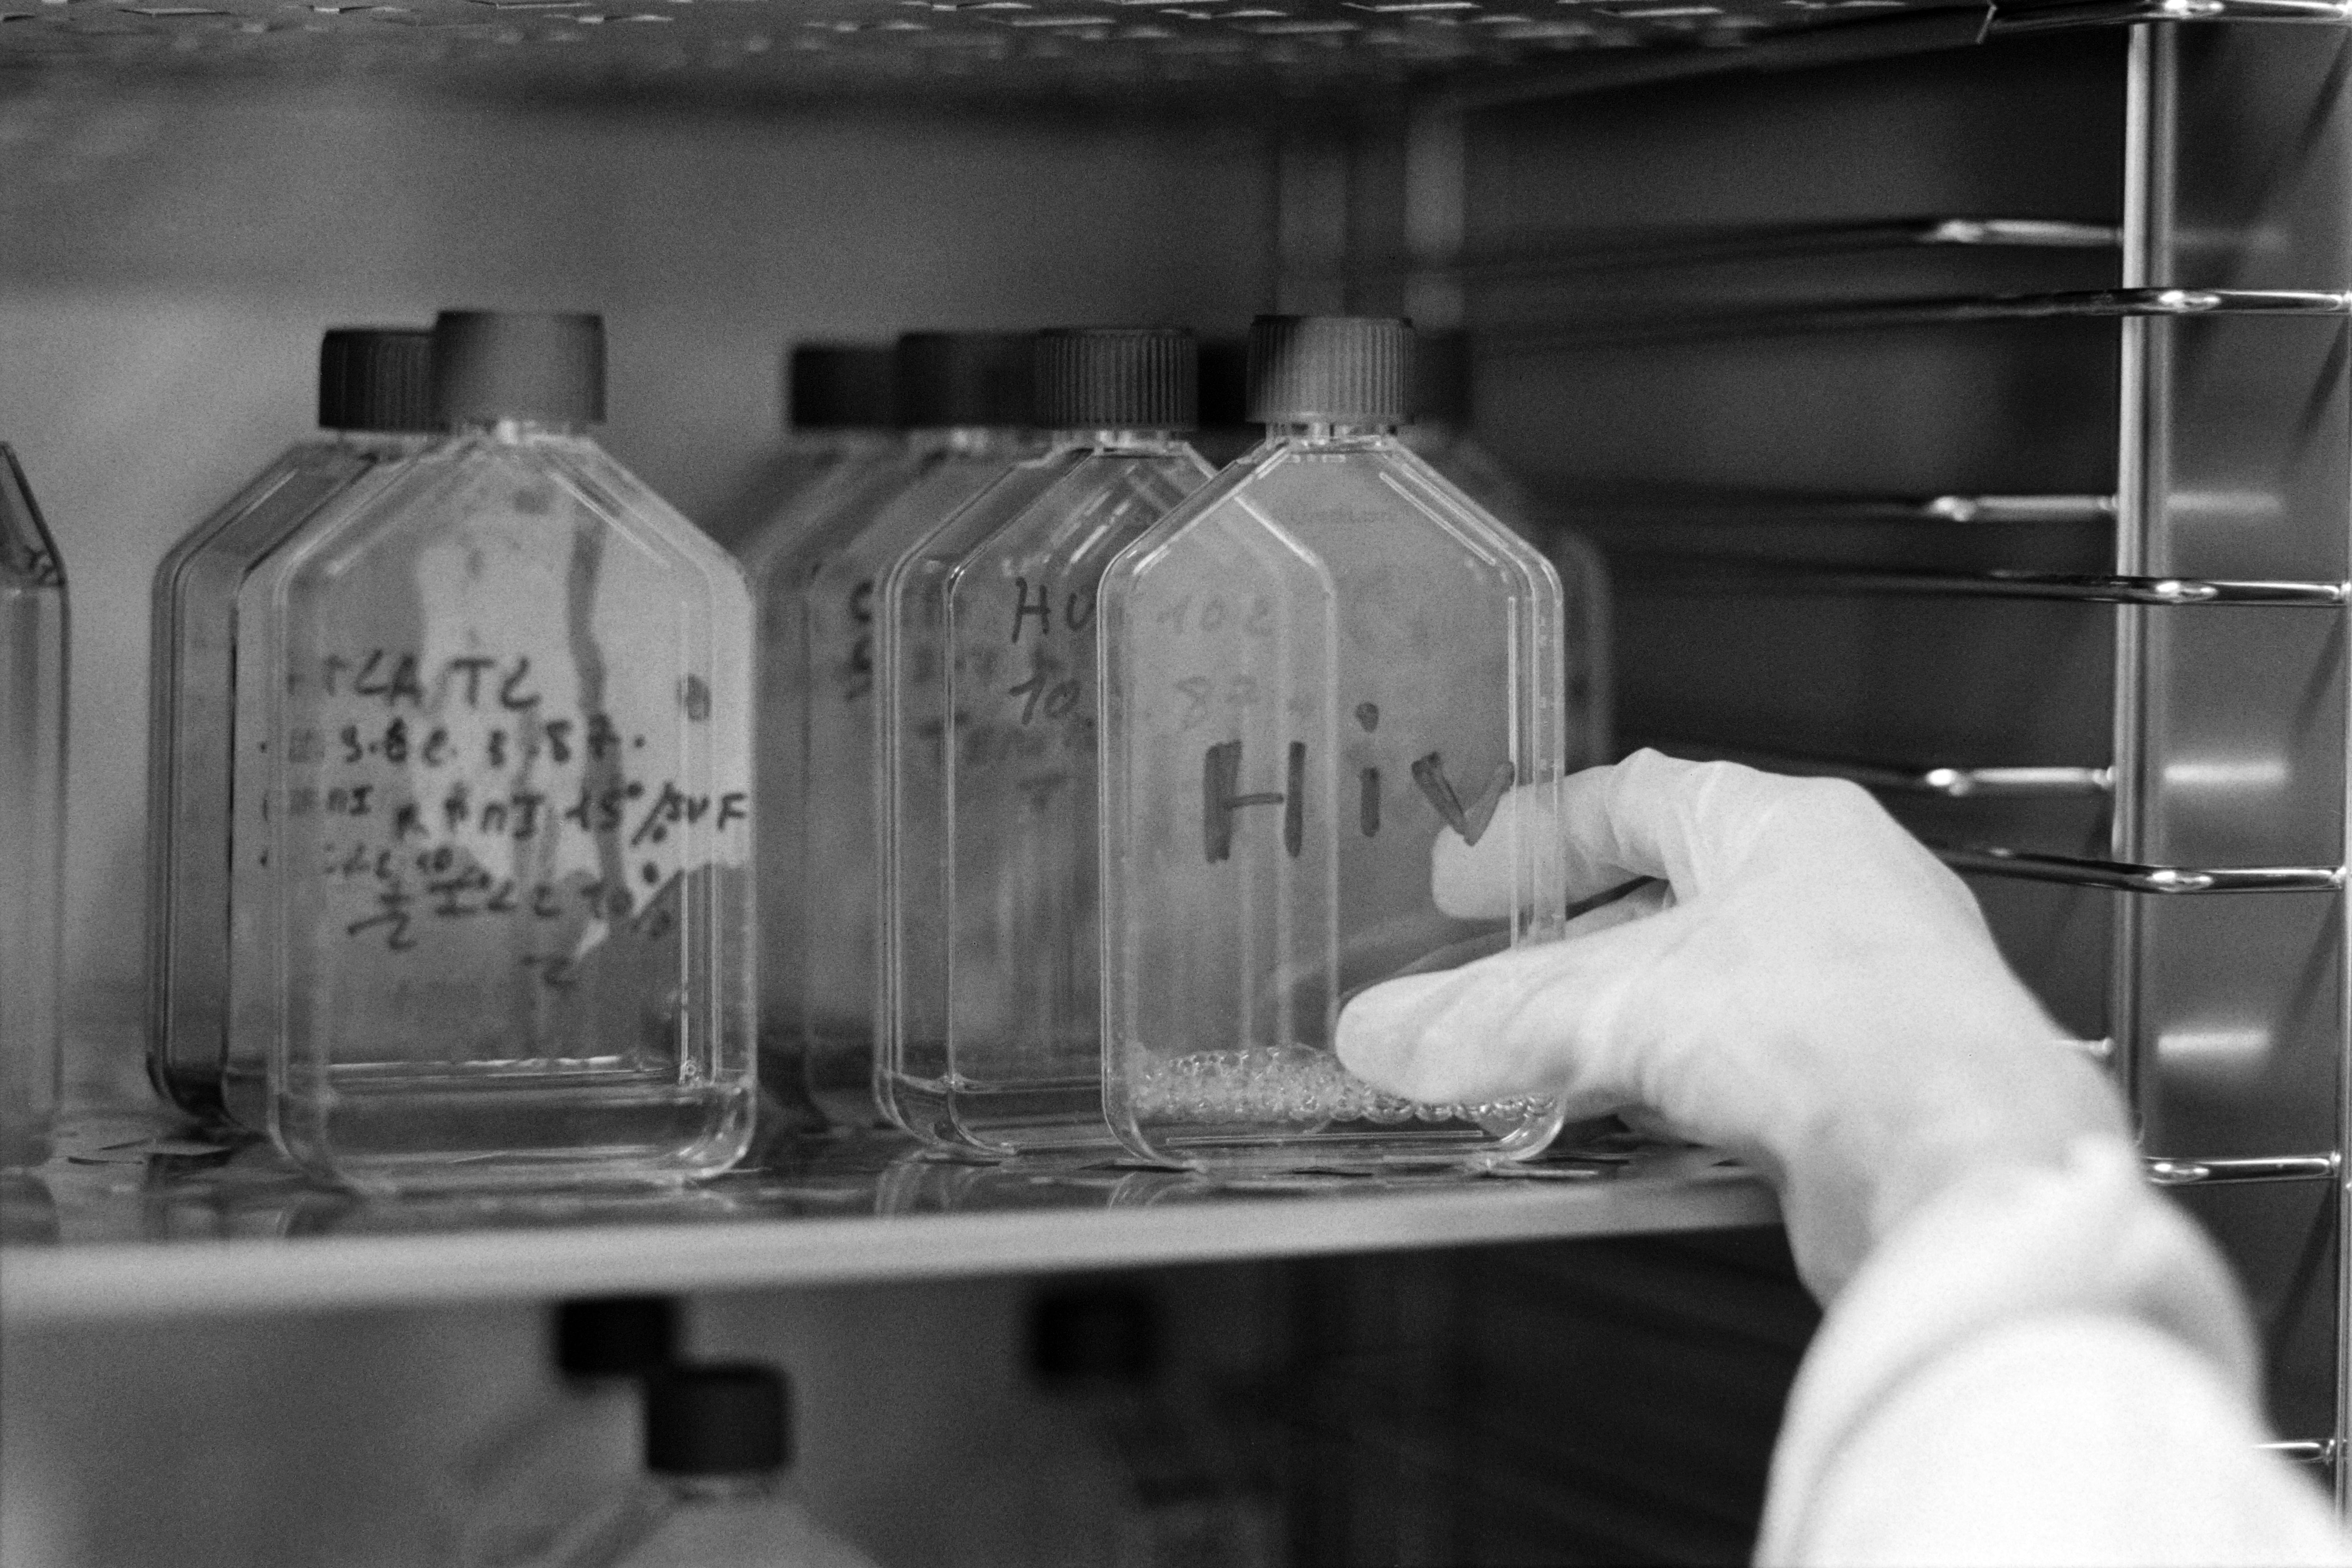 Vials that may or may not be infected with retrovirus of HIV or HTLVI are seen at the high-security AIDS-research laboratory of Saint-Louis hospital in Paris, on March 18, 1987. (DERRICK CEYRAC/AFP via Getty Images)